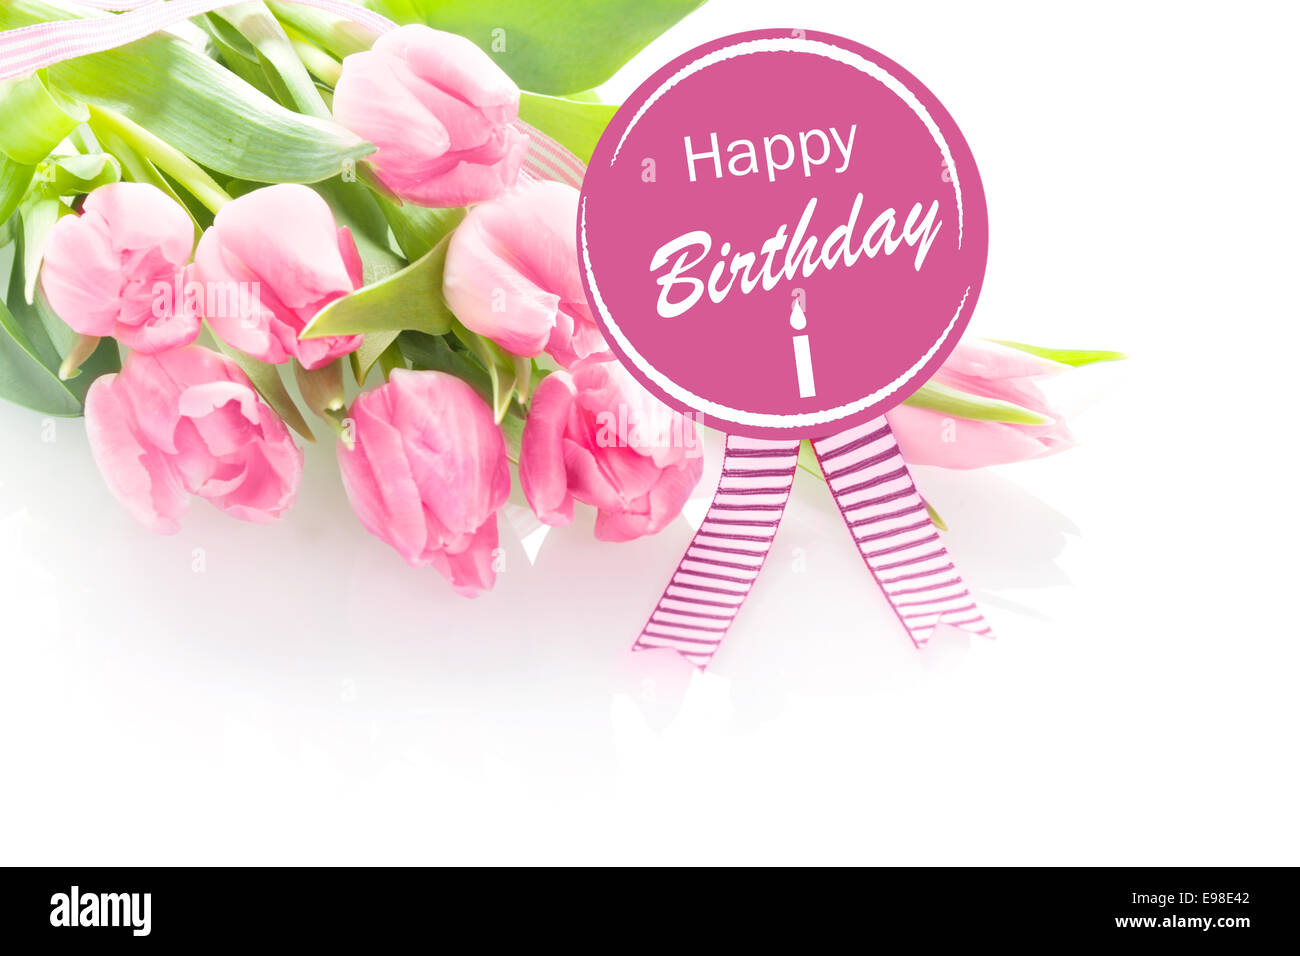 Happy birthday greetings text flowers stock photos happy birthday bunch of beautiful fresh pink tulips with a happy birthday greeting message on a round purple izmirmasajfo